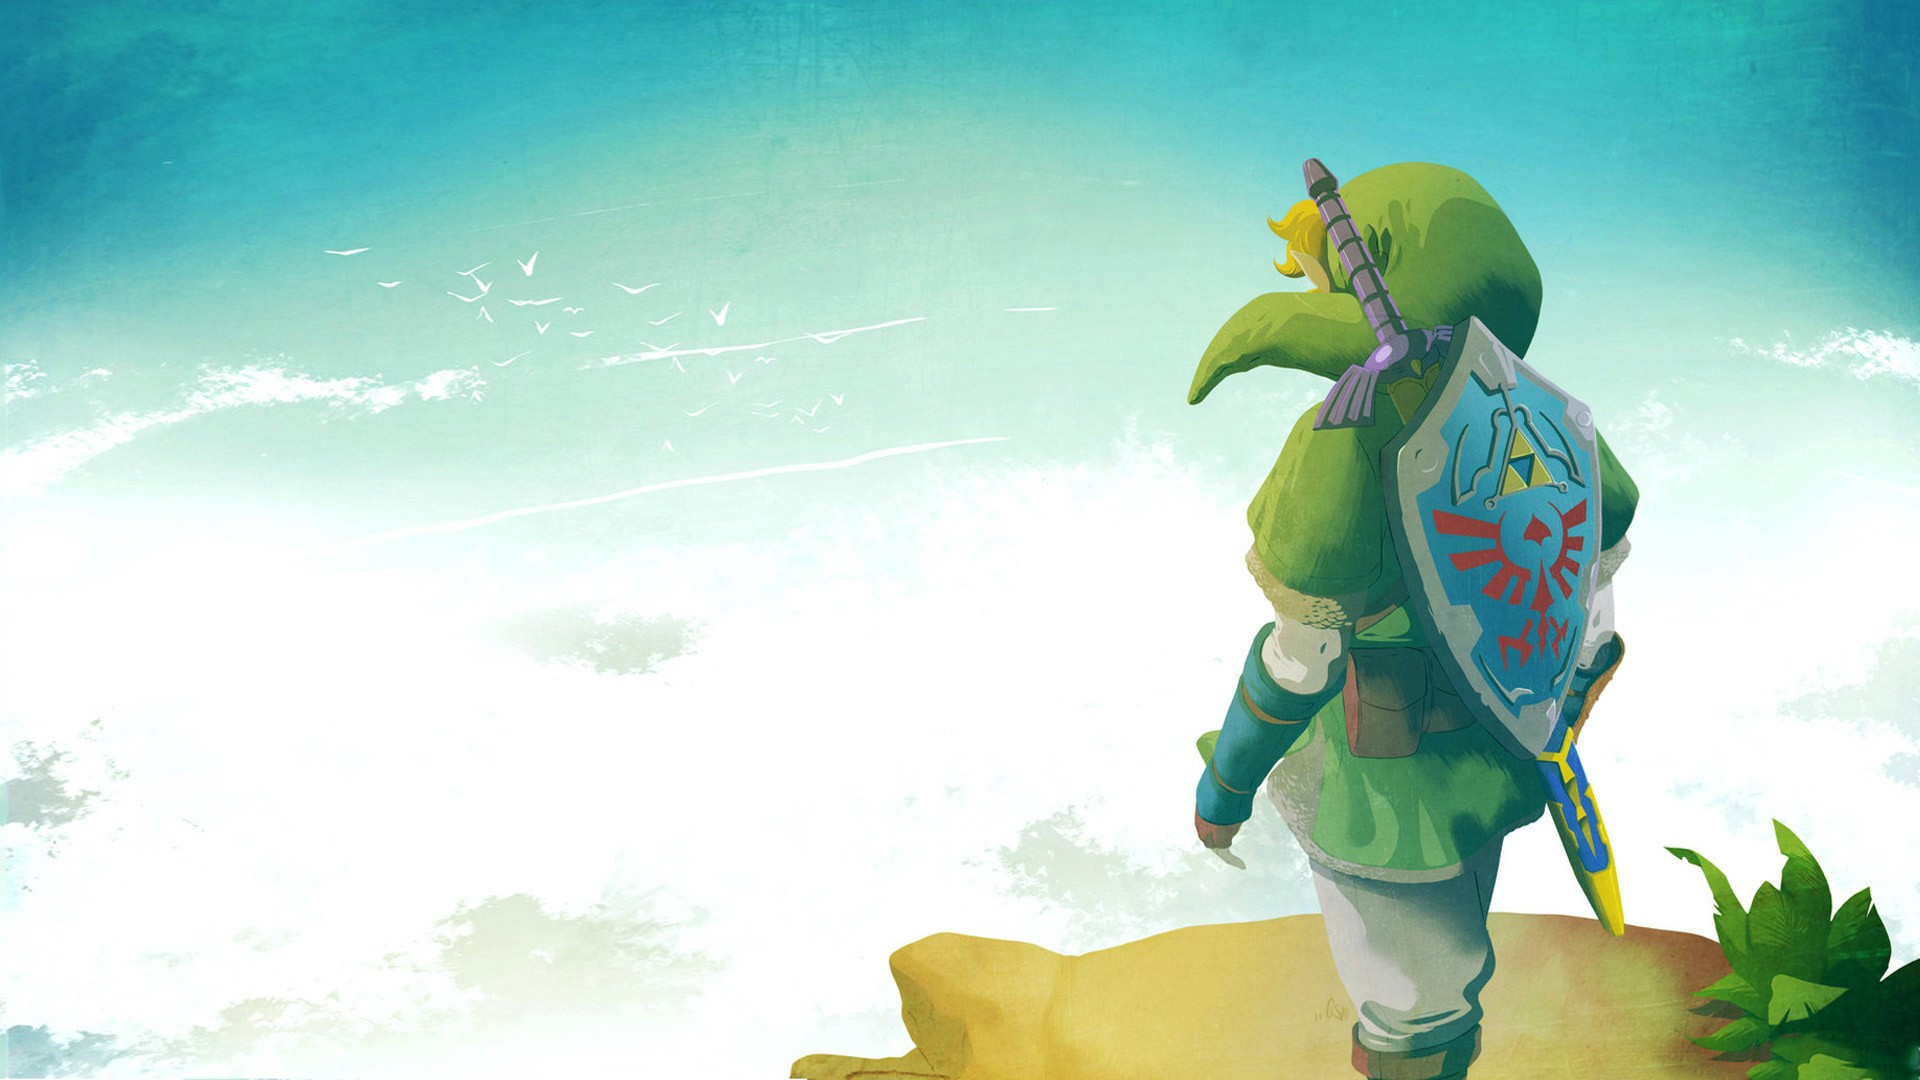 094 zelda link zelda wallpaper 1920 x 1080 Wallpaper HD Wallpaper 1920x1080